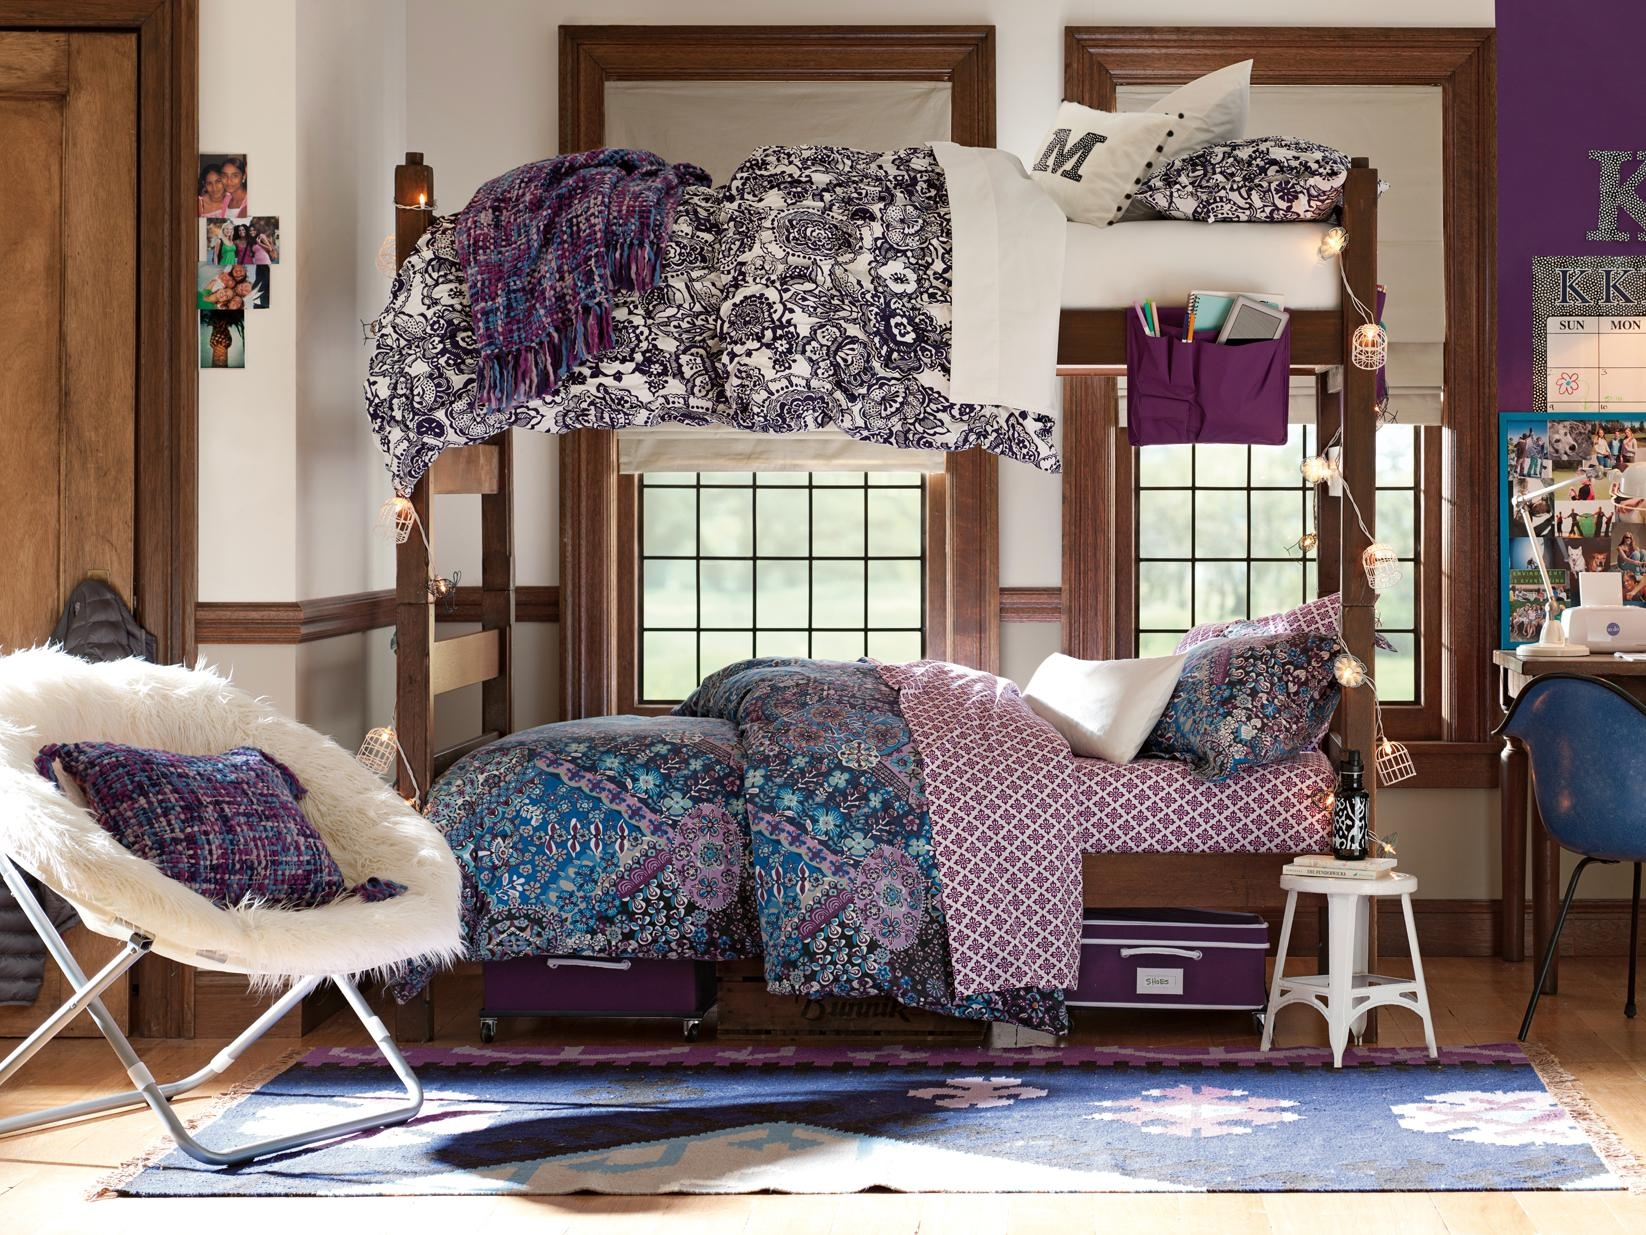 Cute Dorm Room Decorating Ideas – Creative Wall Décor For Your Inside Wall Art For College Dorms (Image 9 of 20)